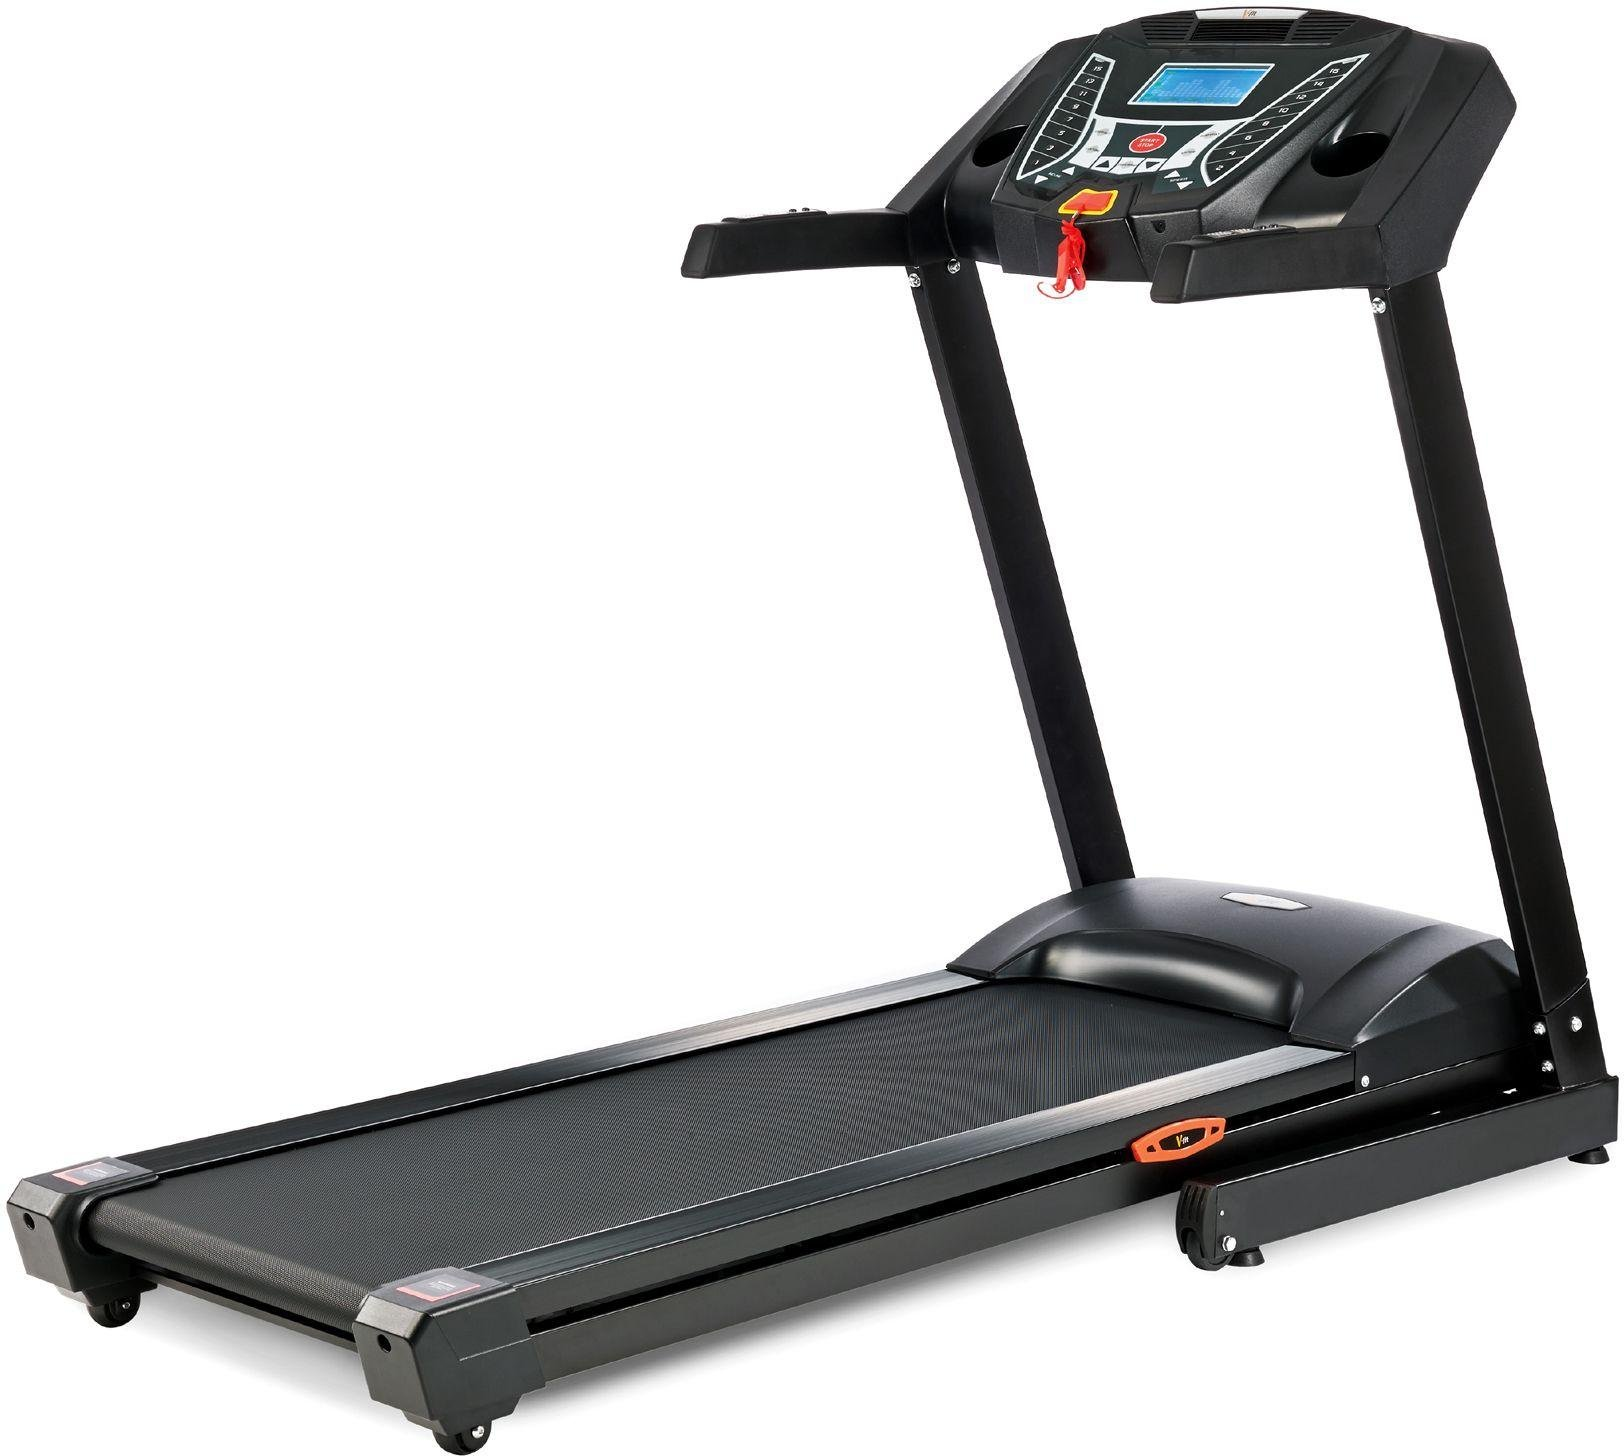 Livestrong Ls8 0t Treadmill Owners Manual: Motorised Treadmill: Buy Motorised Treadmills